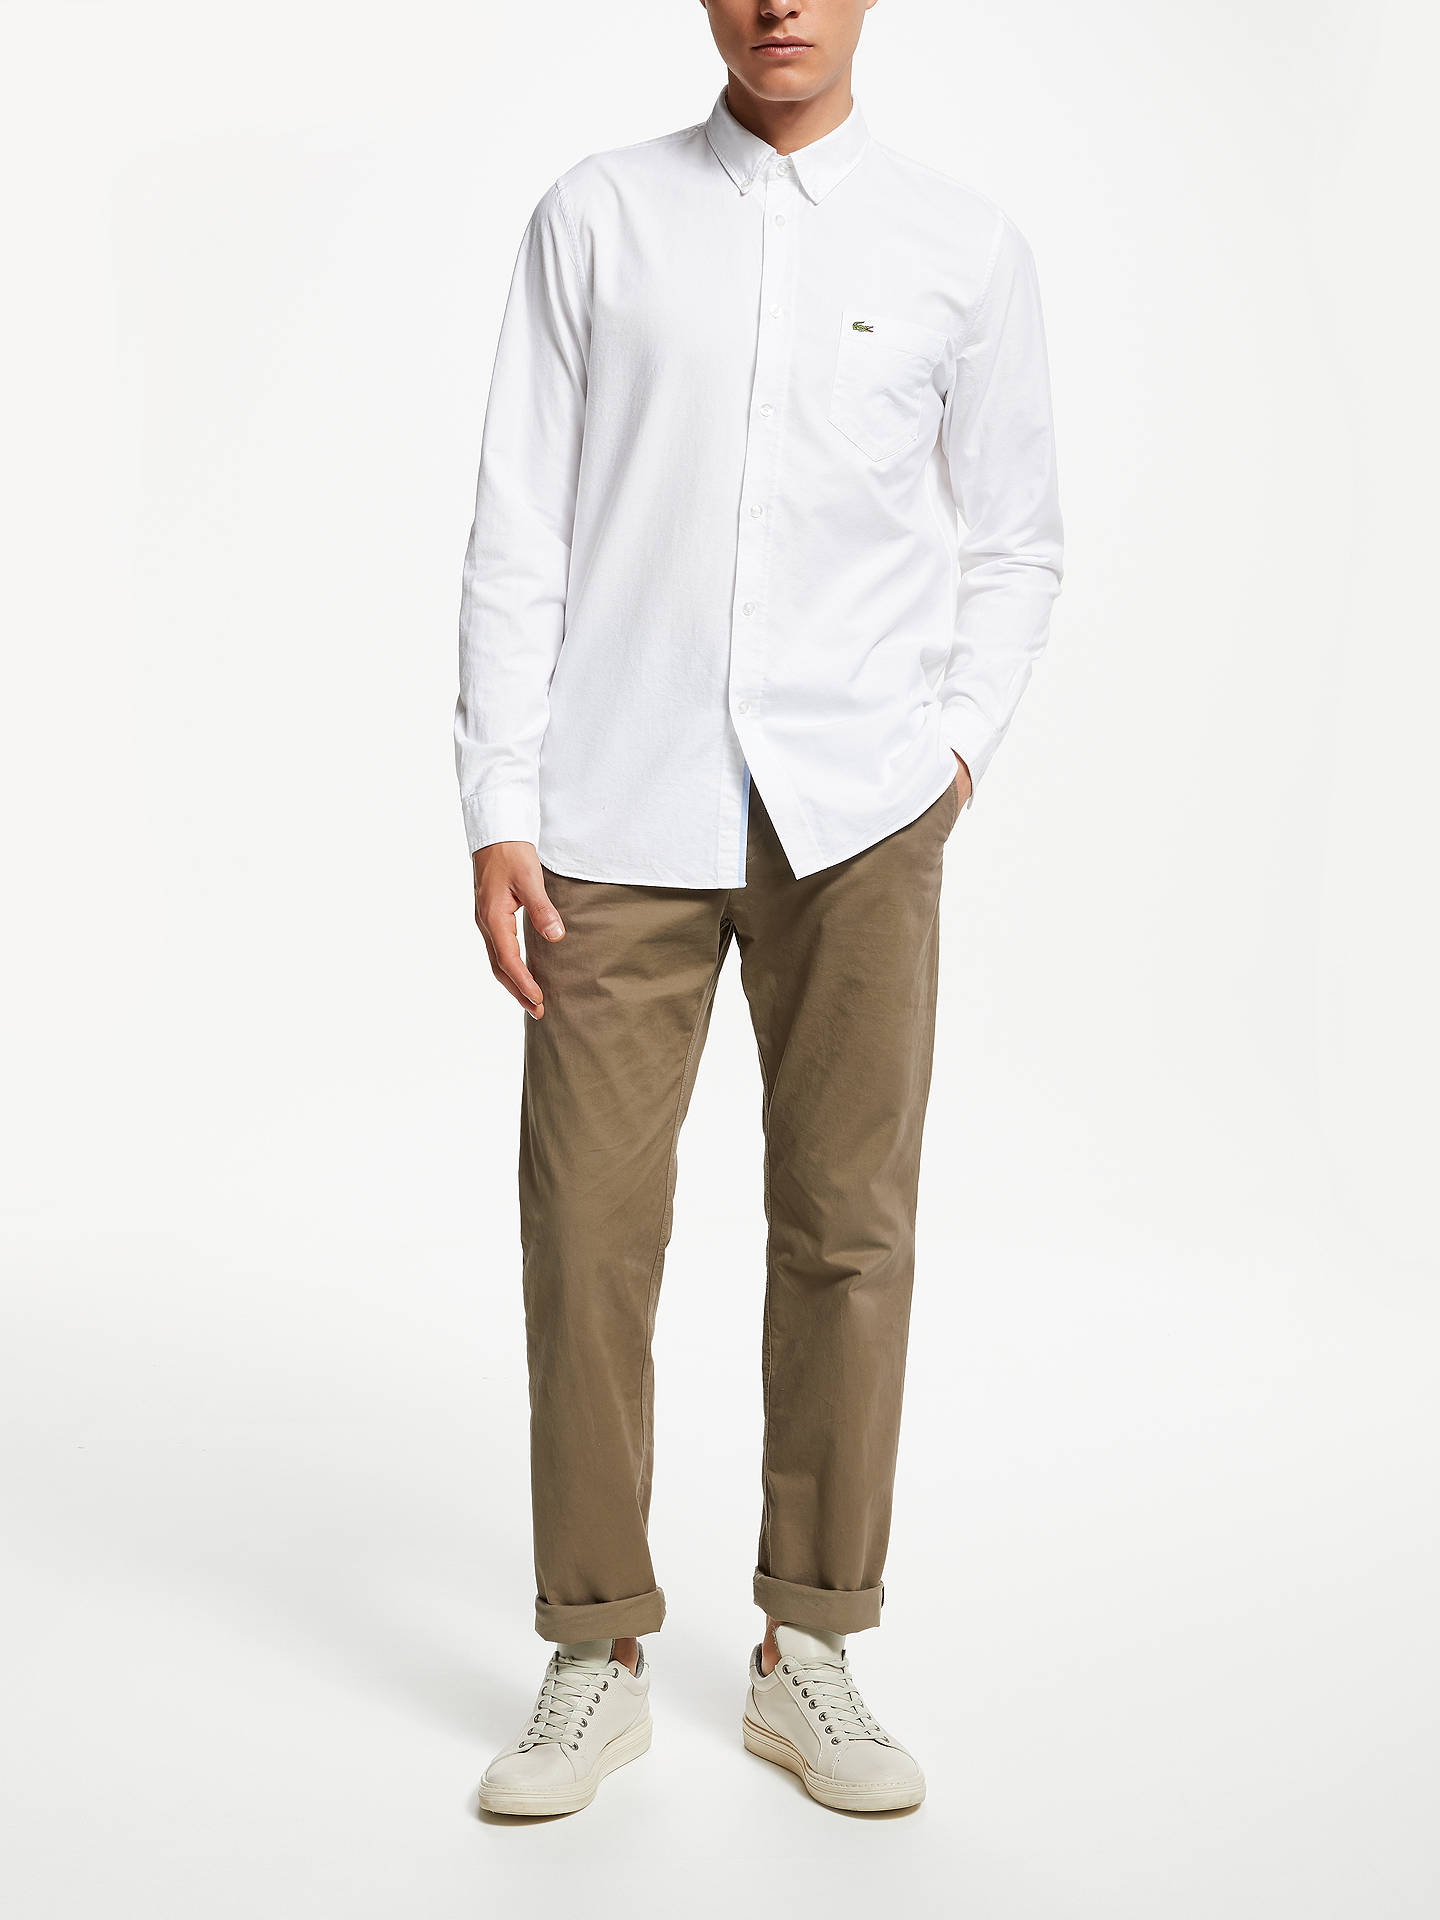 c8ad0b70 ... Buy Lacoste Long Sleeve Oxford Shirt, White, S Online at johnlewis.com  ...